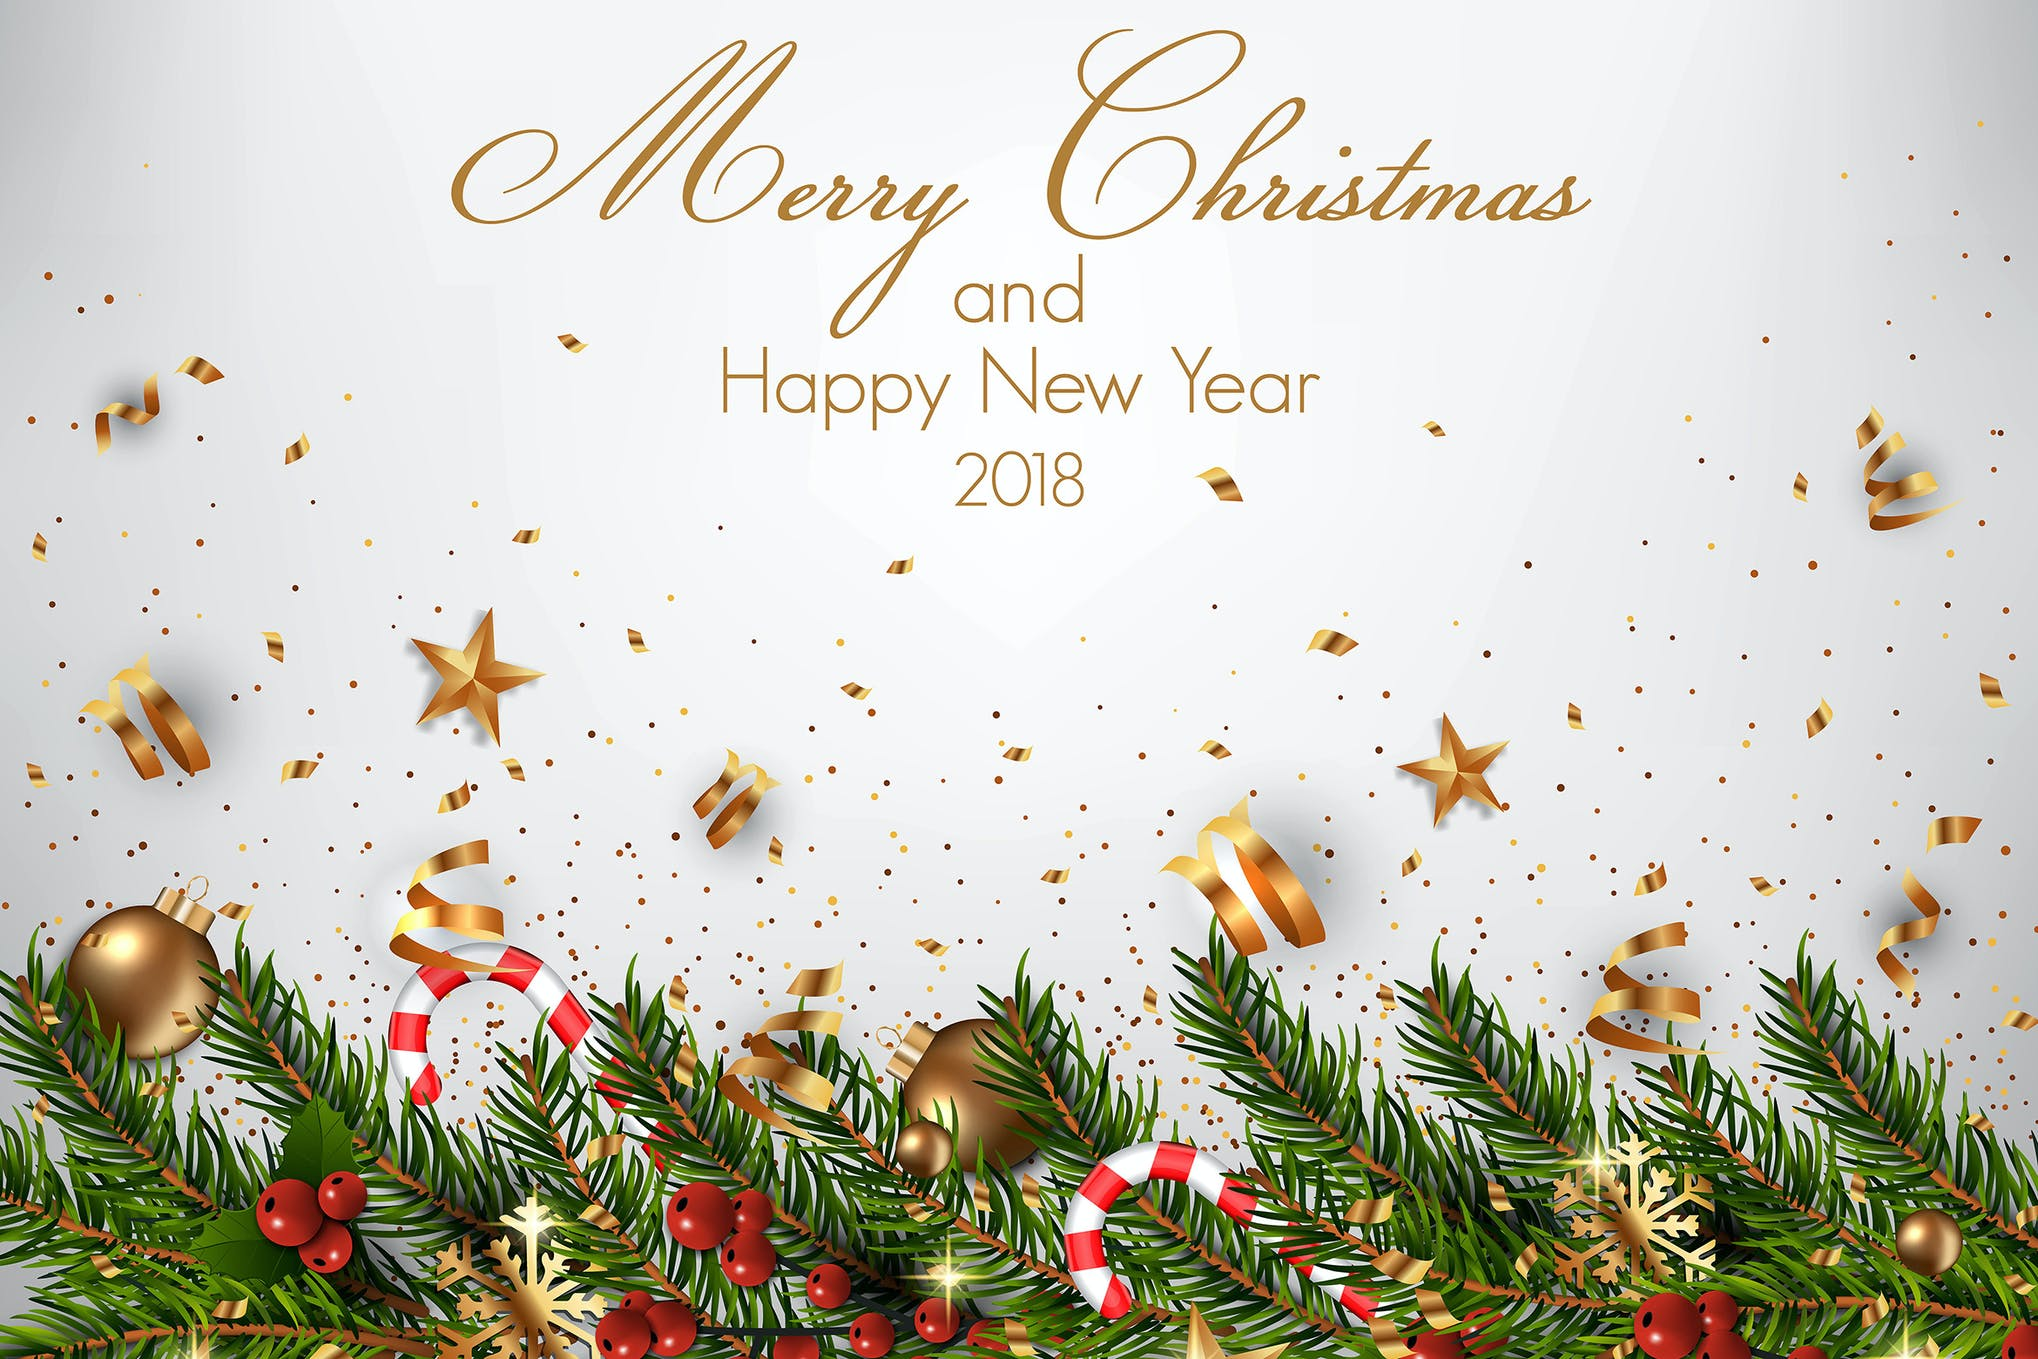 Download Merry Christmas Happy New Year Card